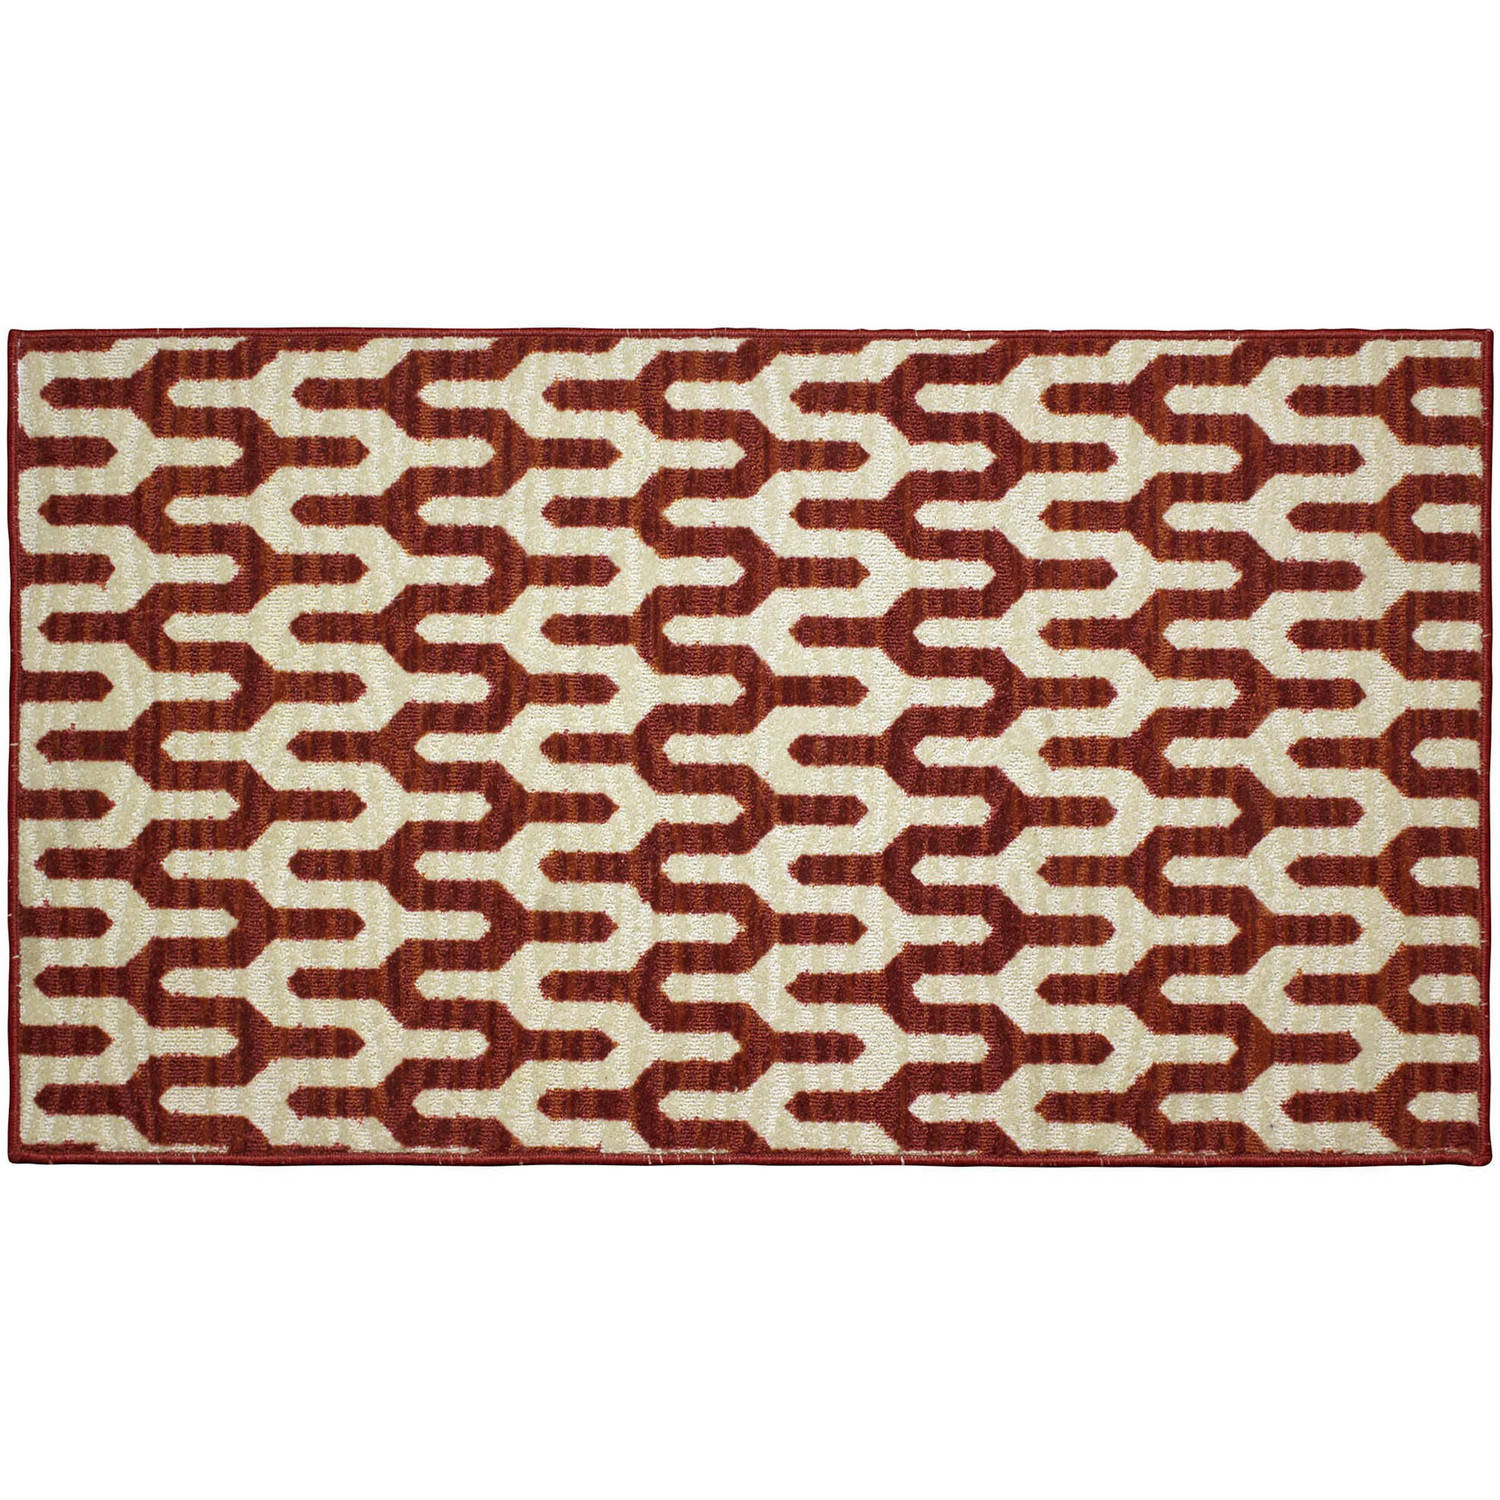 Structures Mila Textured Printed Accent Rug by Generic